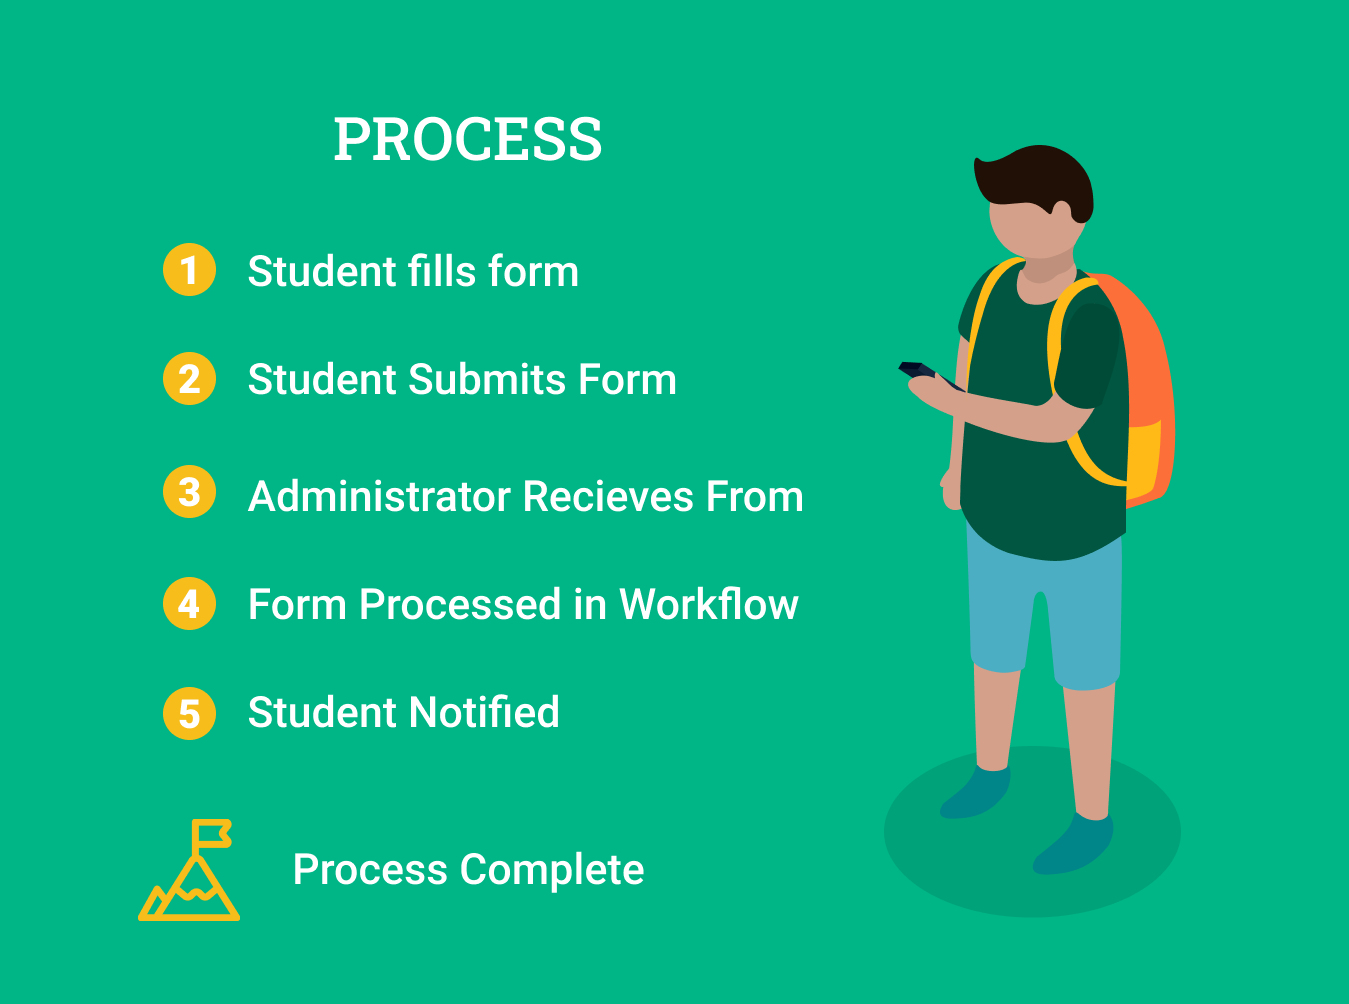 Steps of a Process